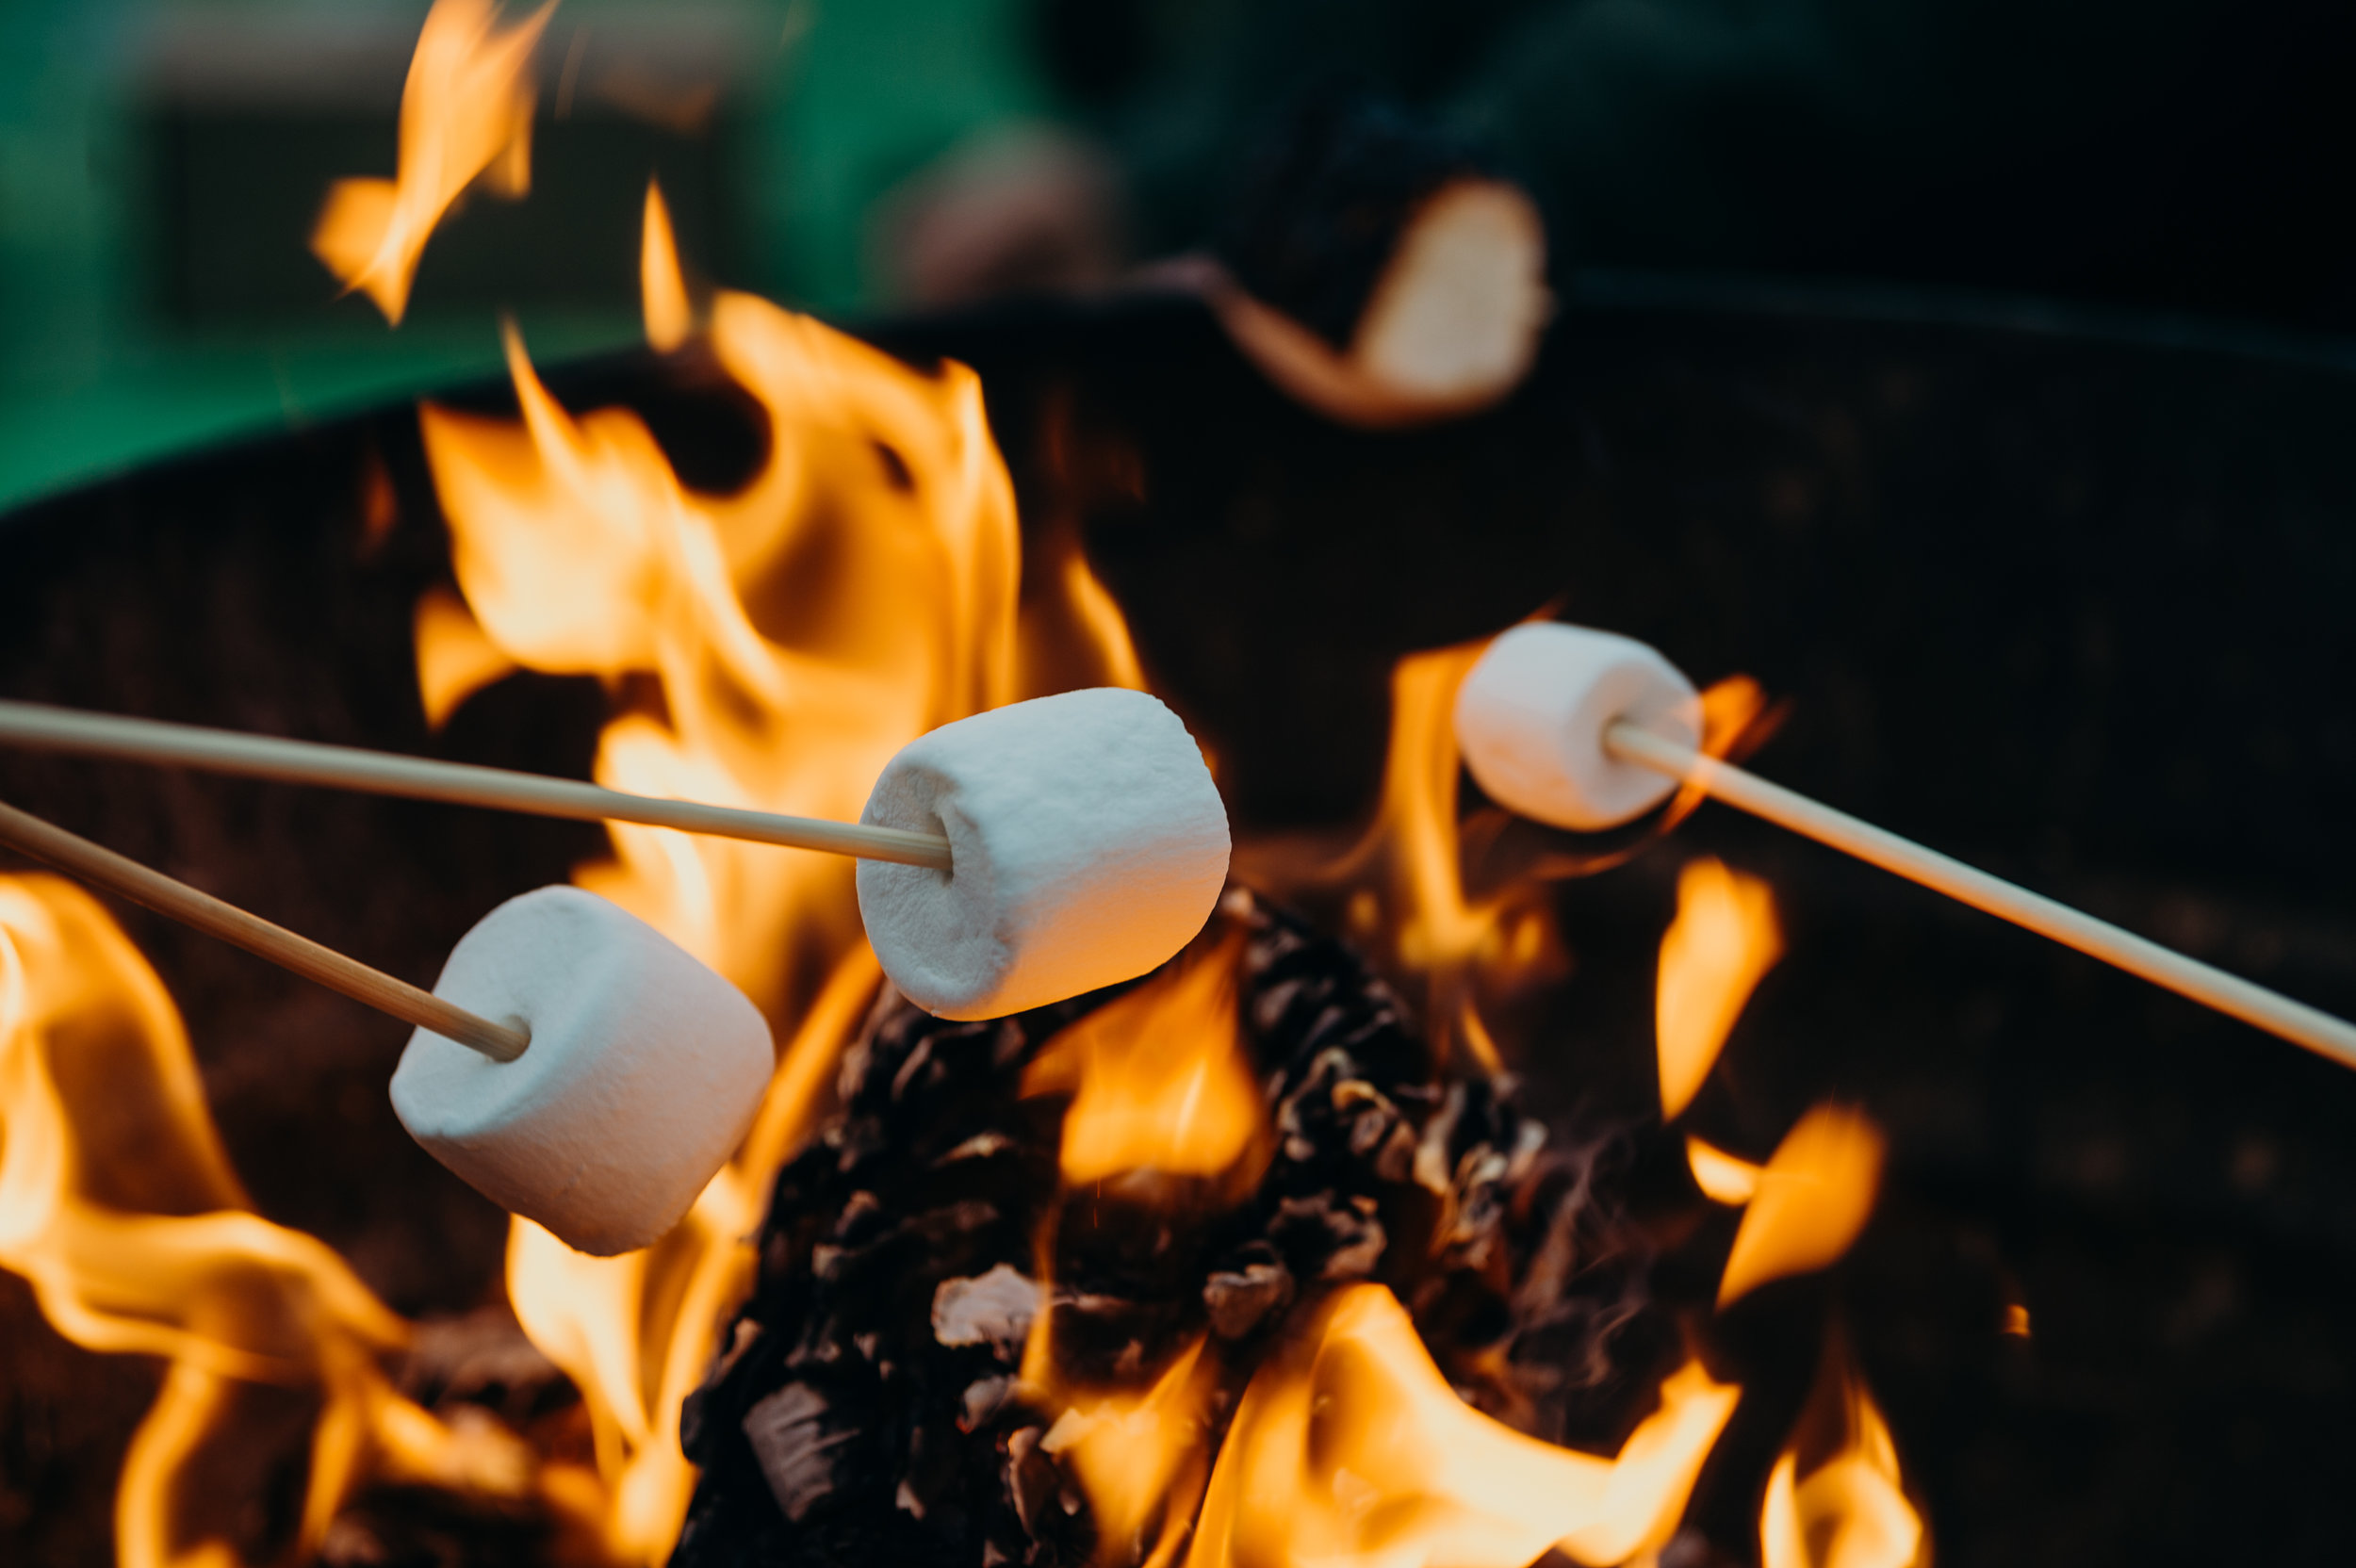 S'MORES NIGHT - 106 BROAD STREET FOR S'MORES, HOT CHOCOLATE AND FELLOWSHIP!